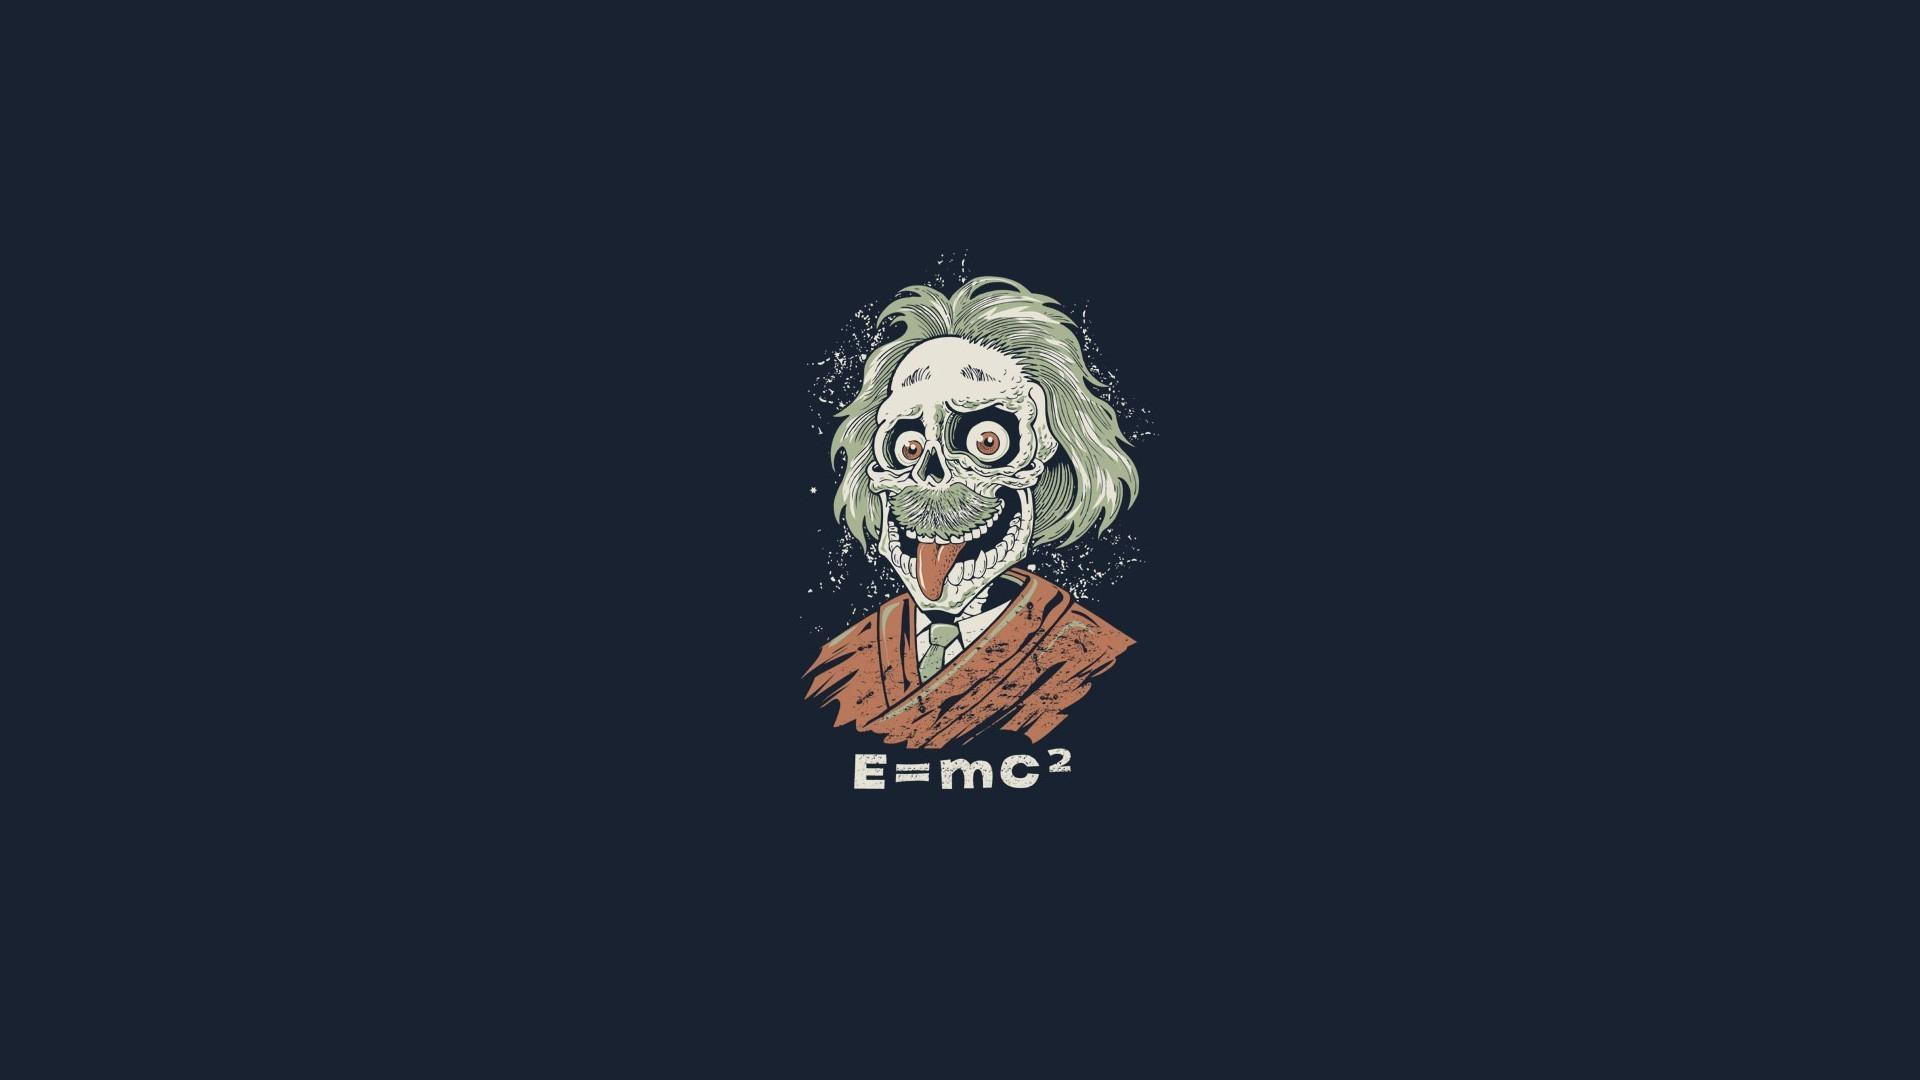 Albert Einstein Funny Zombie HD Wallpapers Exclusive 1920x1080